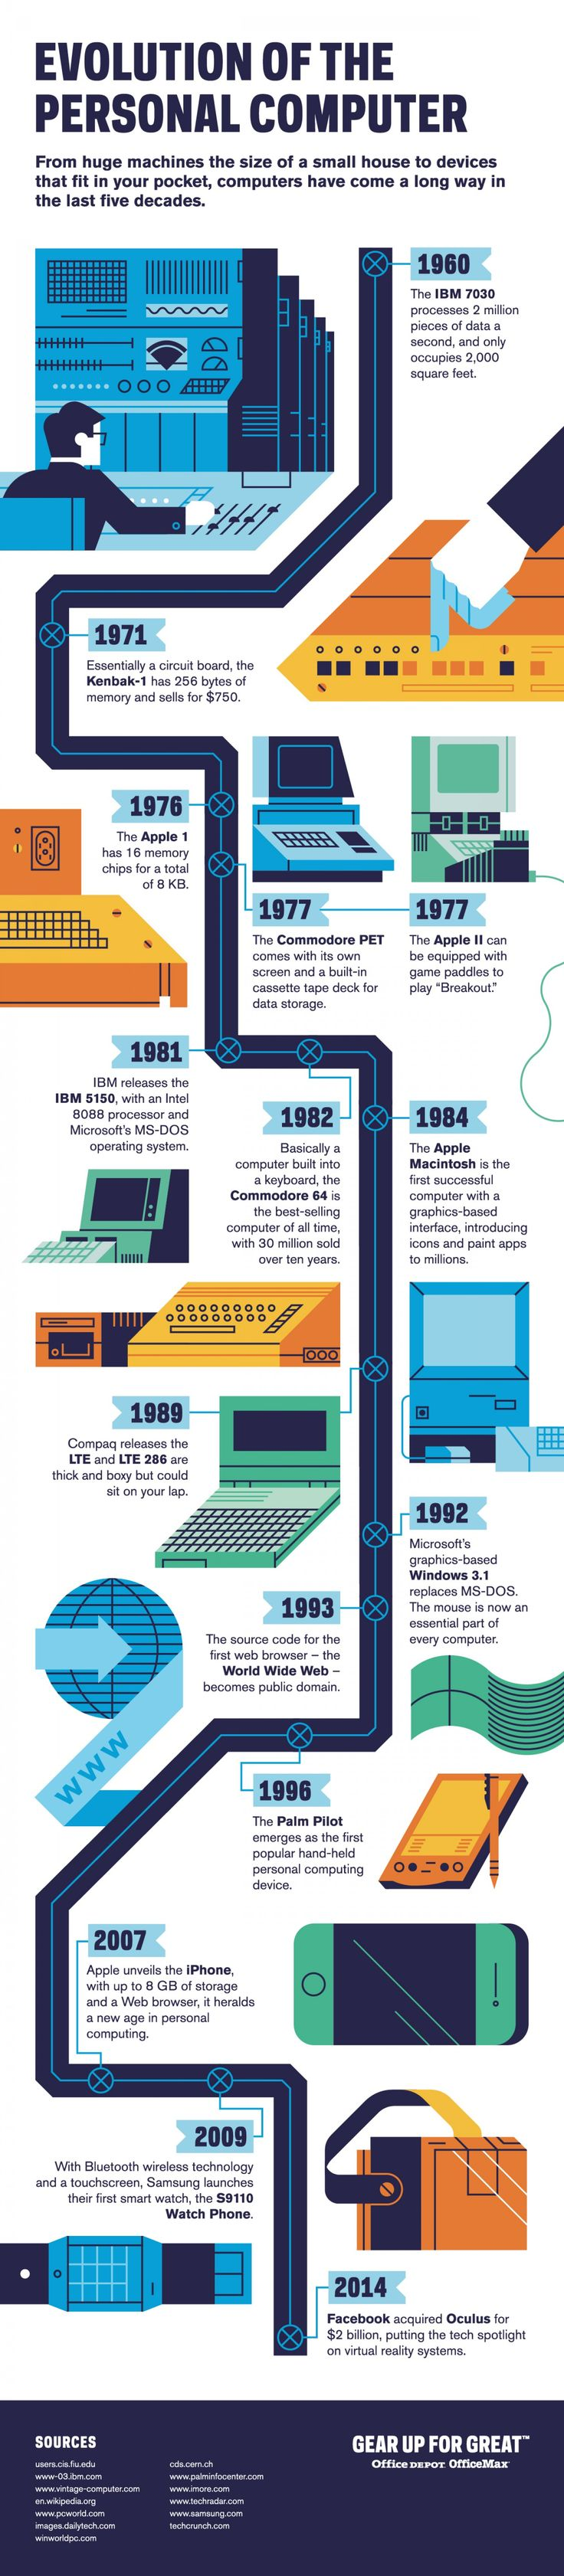 Evolution of the Personal Computer